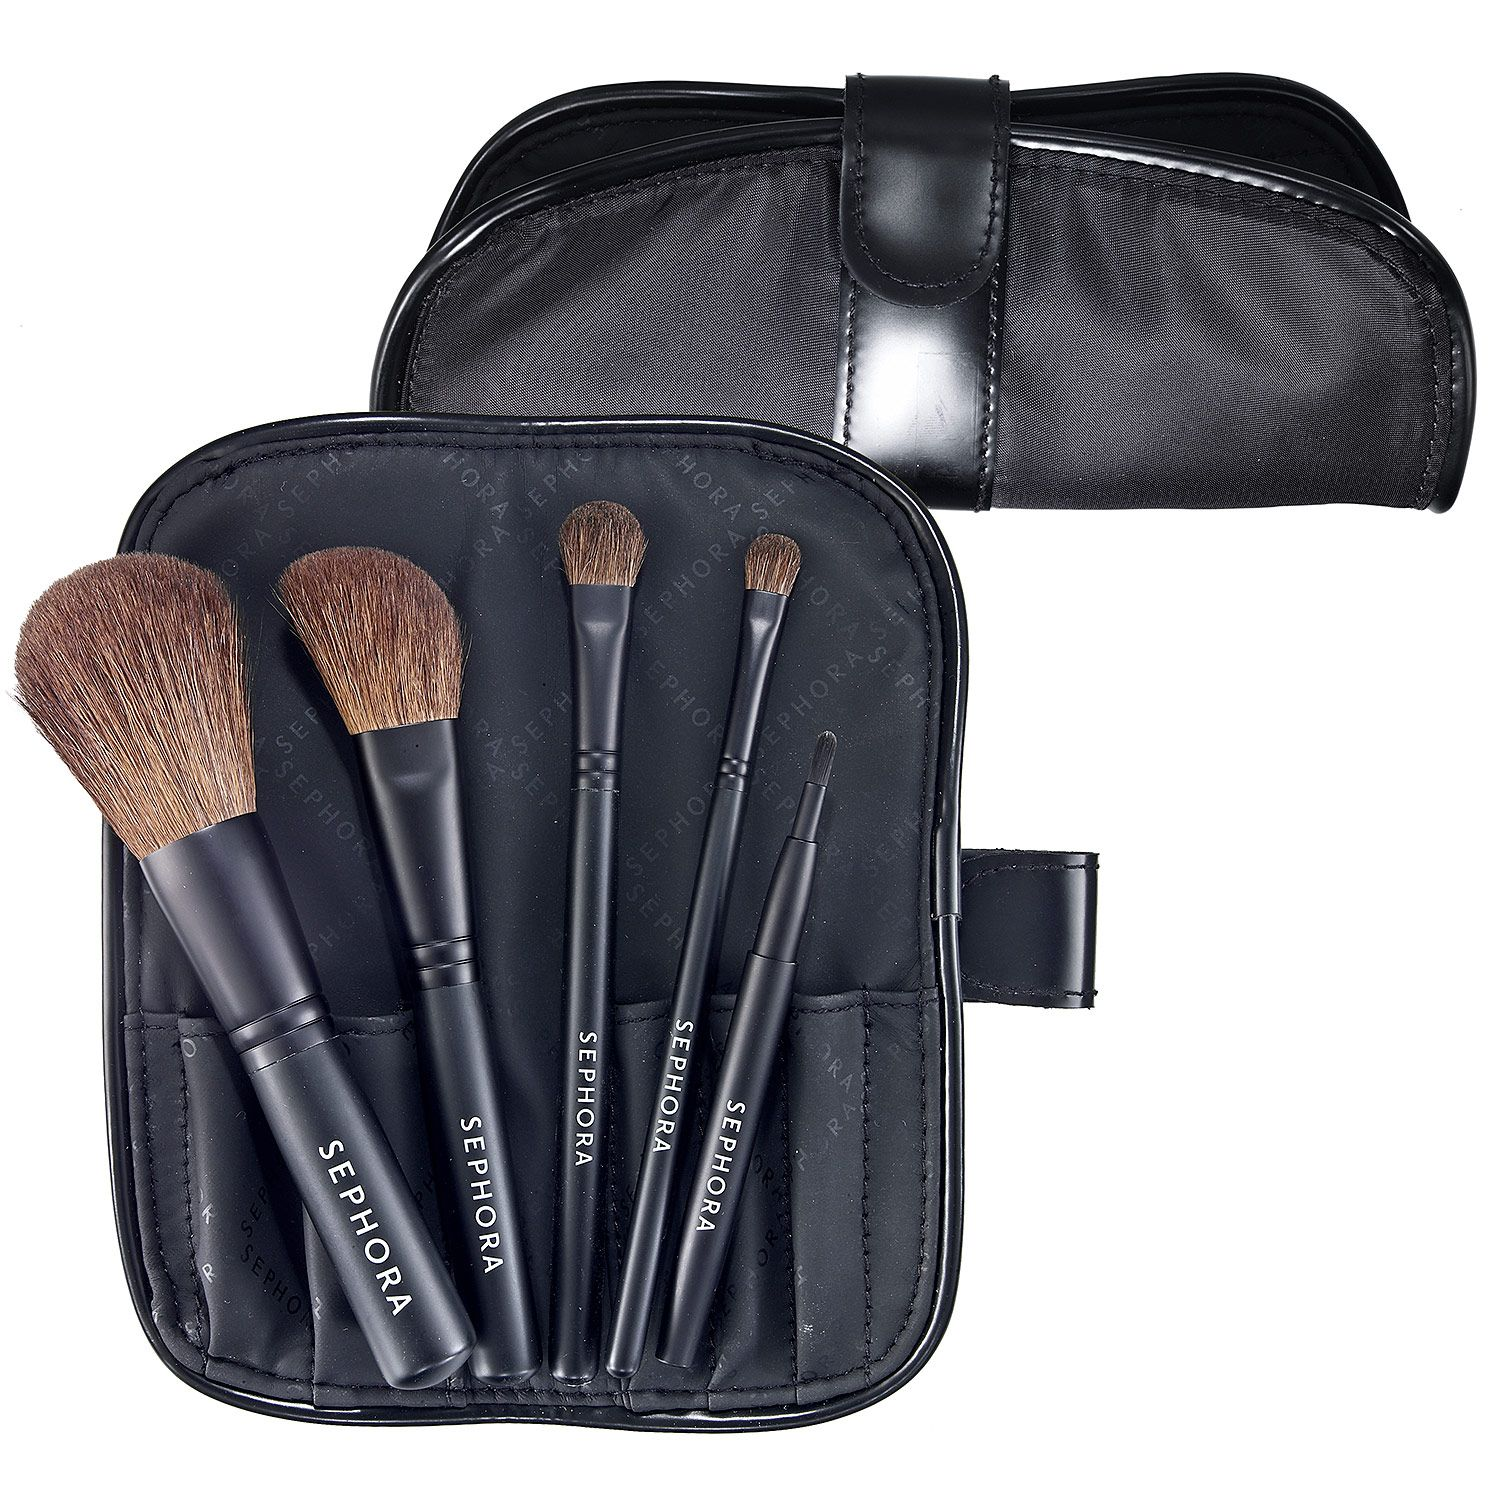 Slim Essential Brush Set SEPHORA COLLECTION Sephora